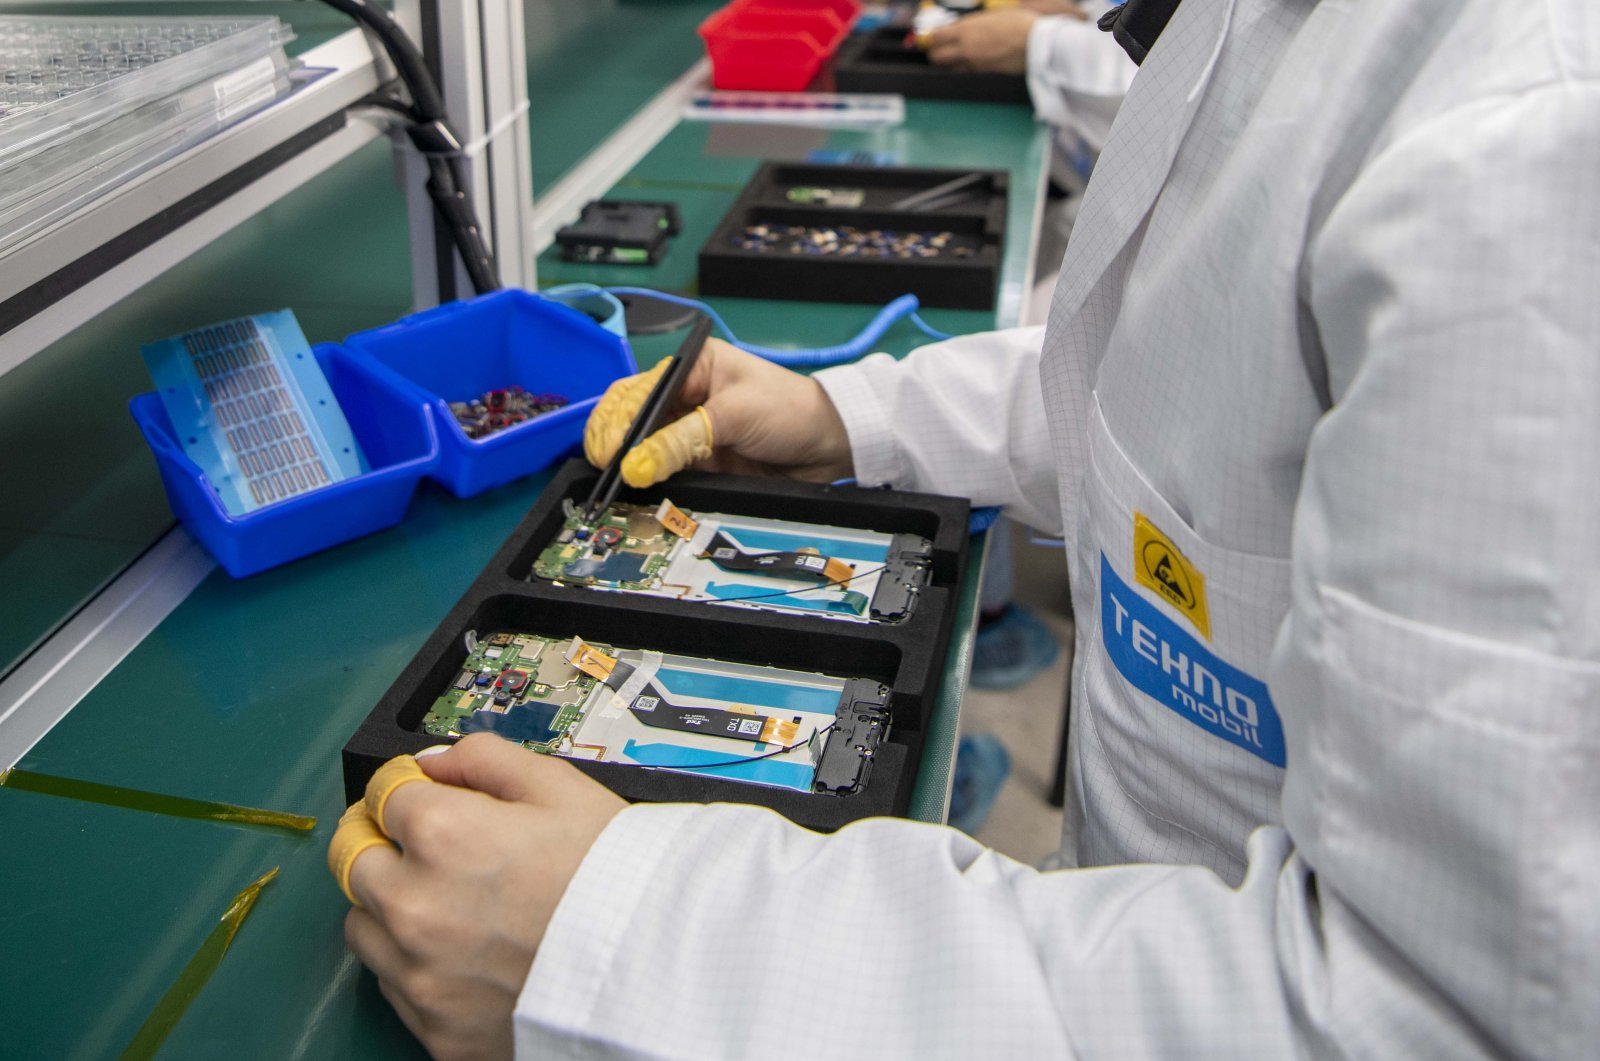 An employee works on a smartphone at Tecno Mobile factory in Istanbul, Turkey, May 24, 2021. (Courtesy of Tecno Mobile )